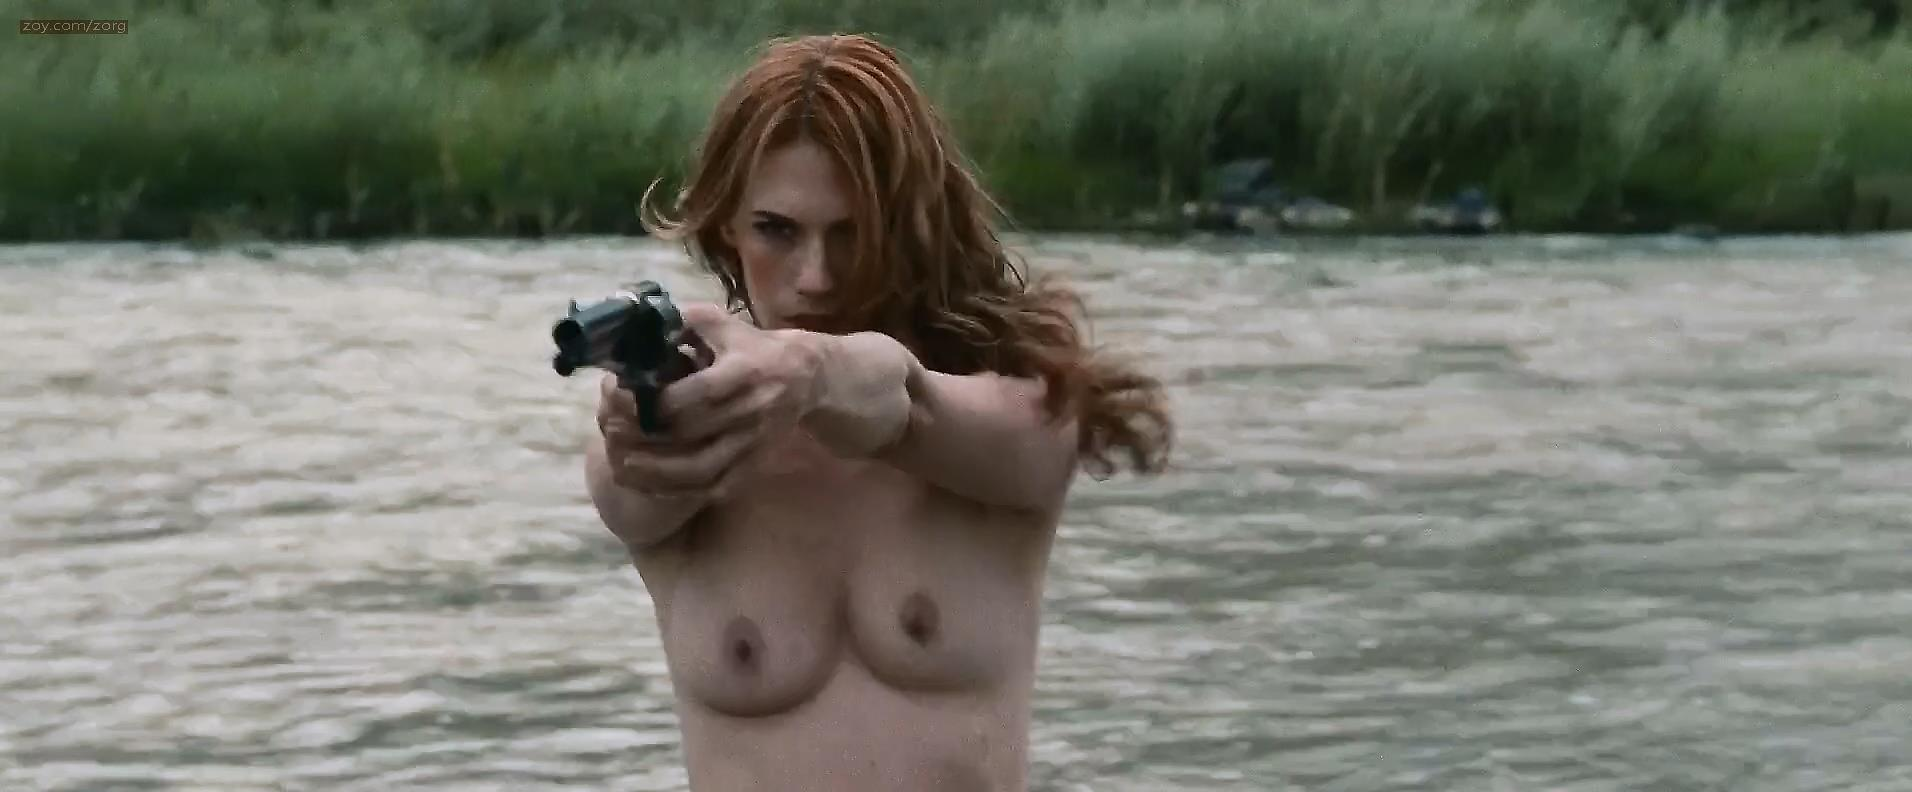 January Jones nude full topless for the first time - Sweet Vengeance (2012) hd1080p